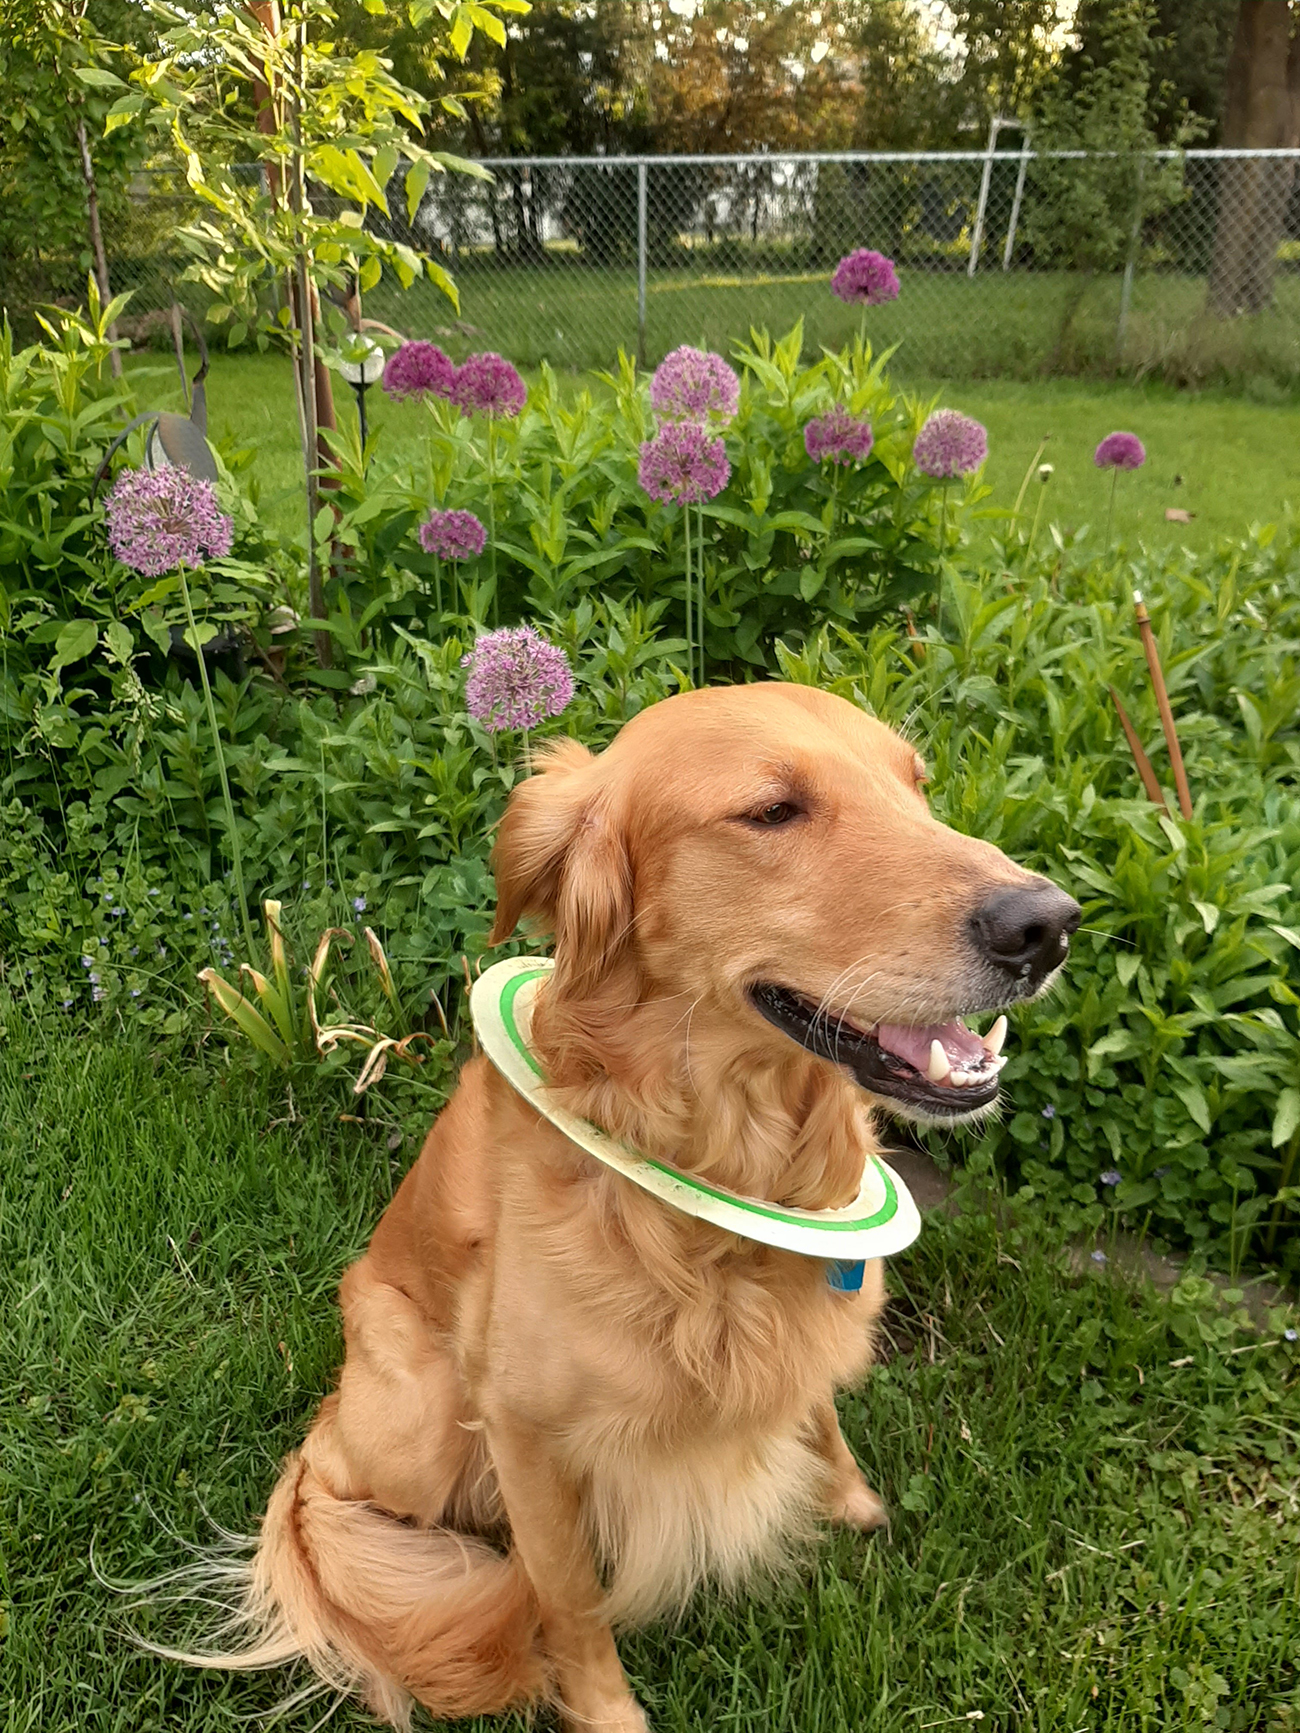 Retriever sits in grass with frisbee around neck